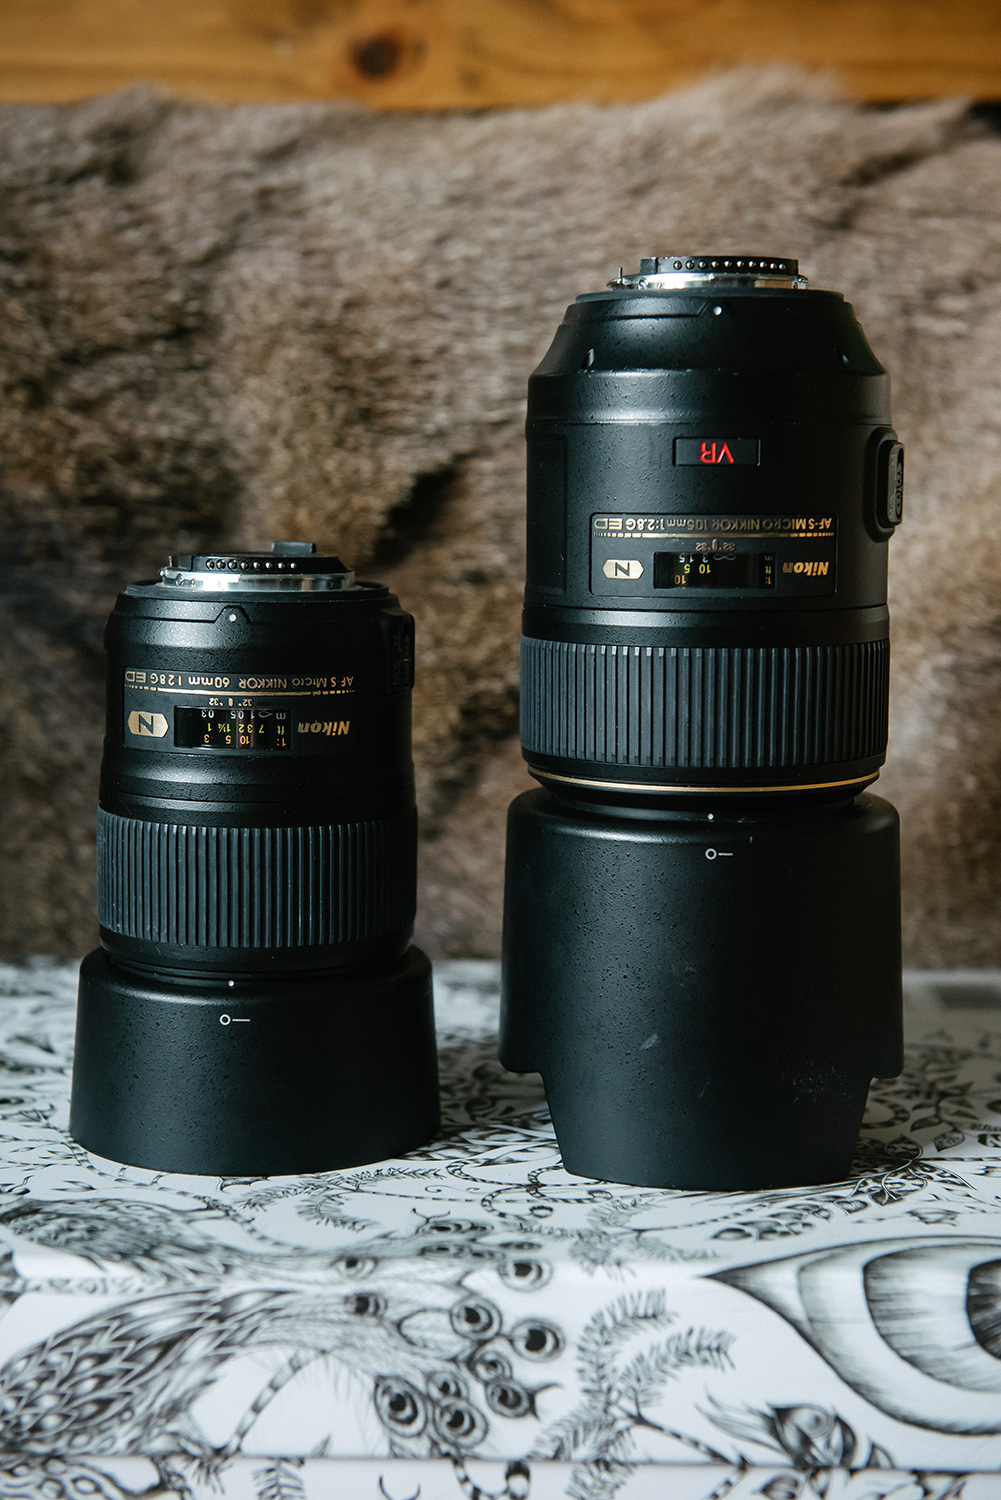 My thoughts on the Micro Nikkor 60mm f/2.8G Lens and the 105mm Macro